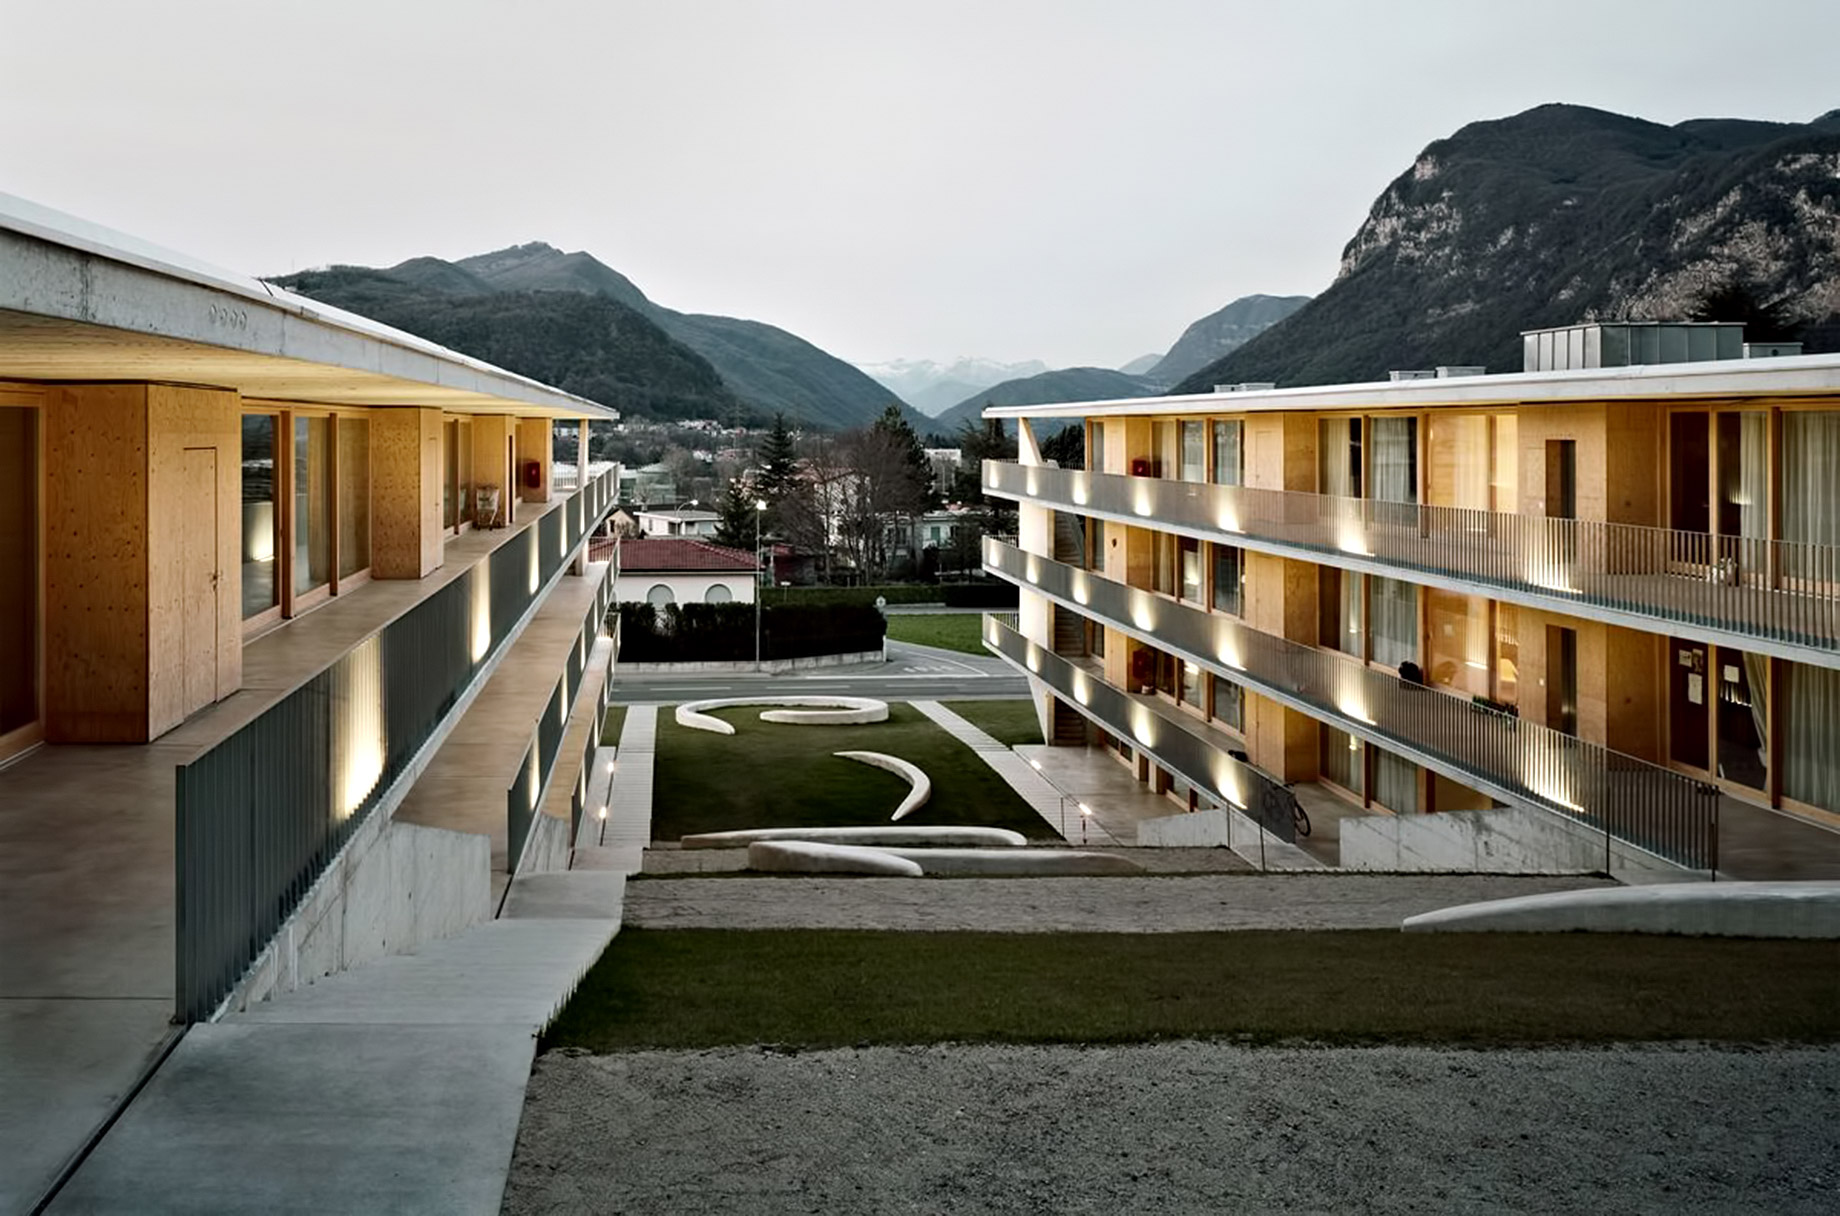 Casa dell'Accademia in Switzerland - Student Housing in the Swiss Alps